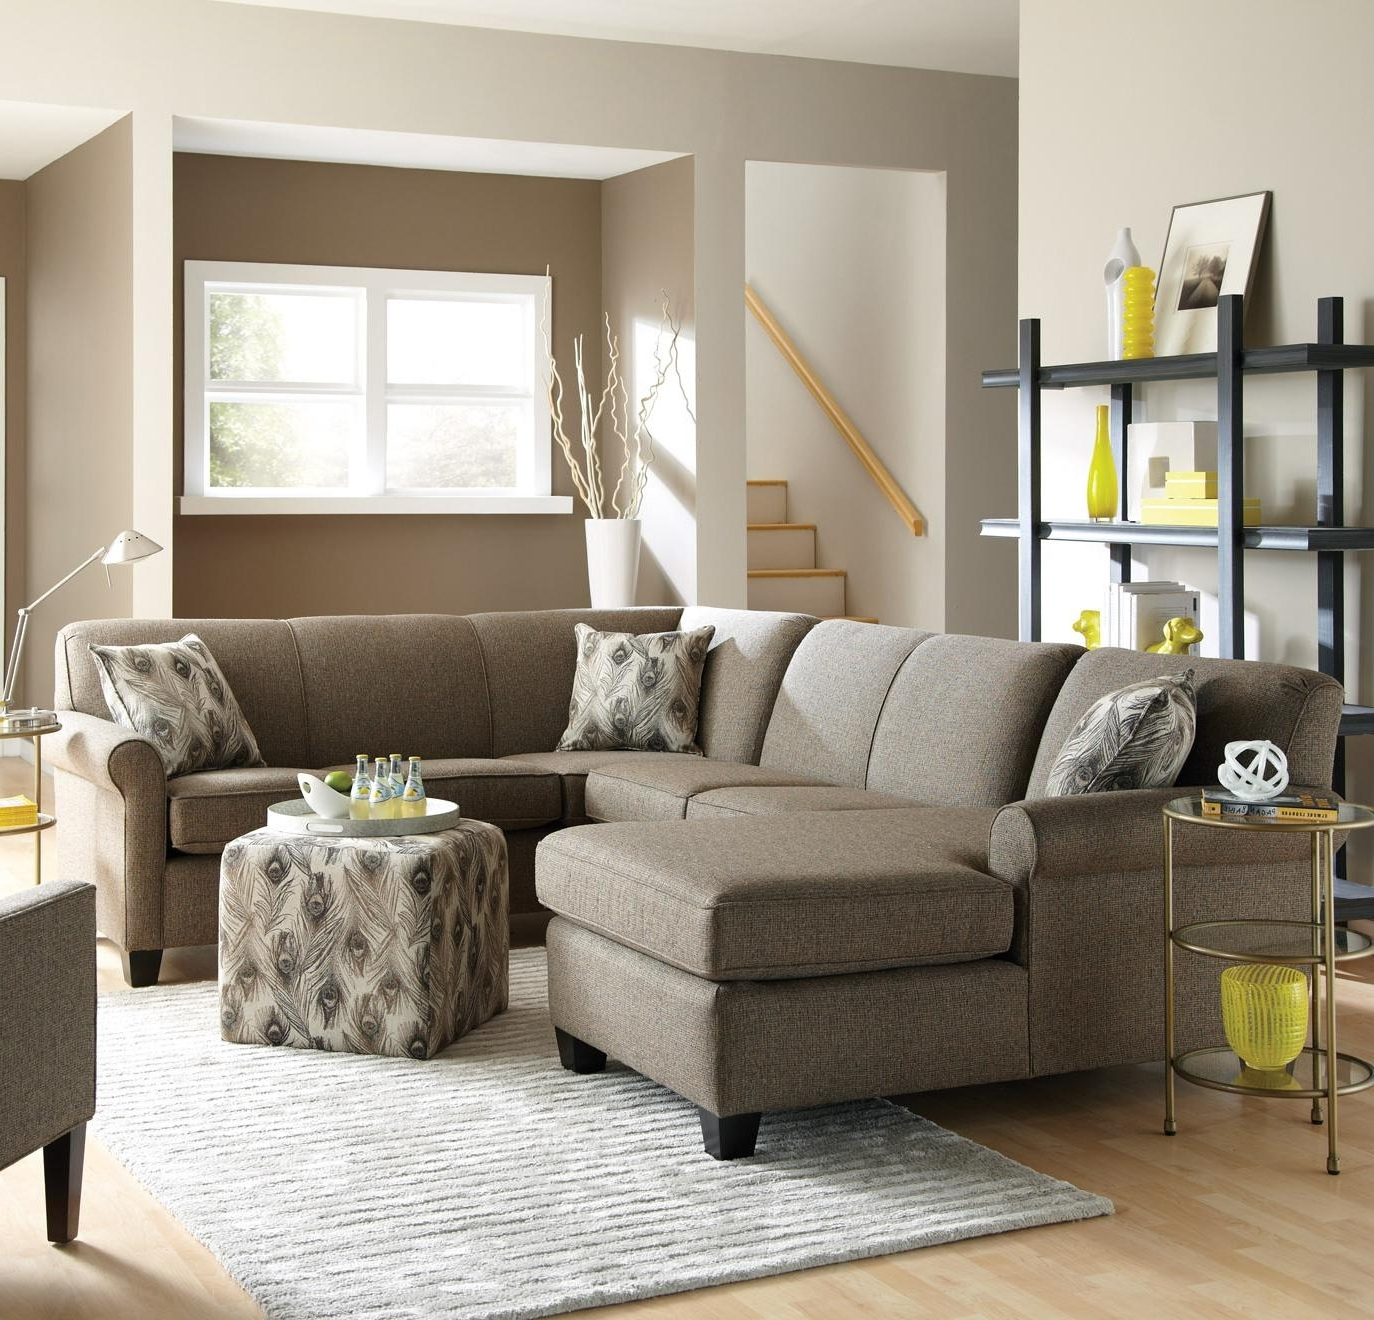 Recent England Angie Long Sectional Sofa With Chaise – Ahfa – Sofa Throughout England Sectional Sofas (View 7 of 15)